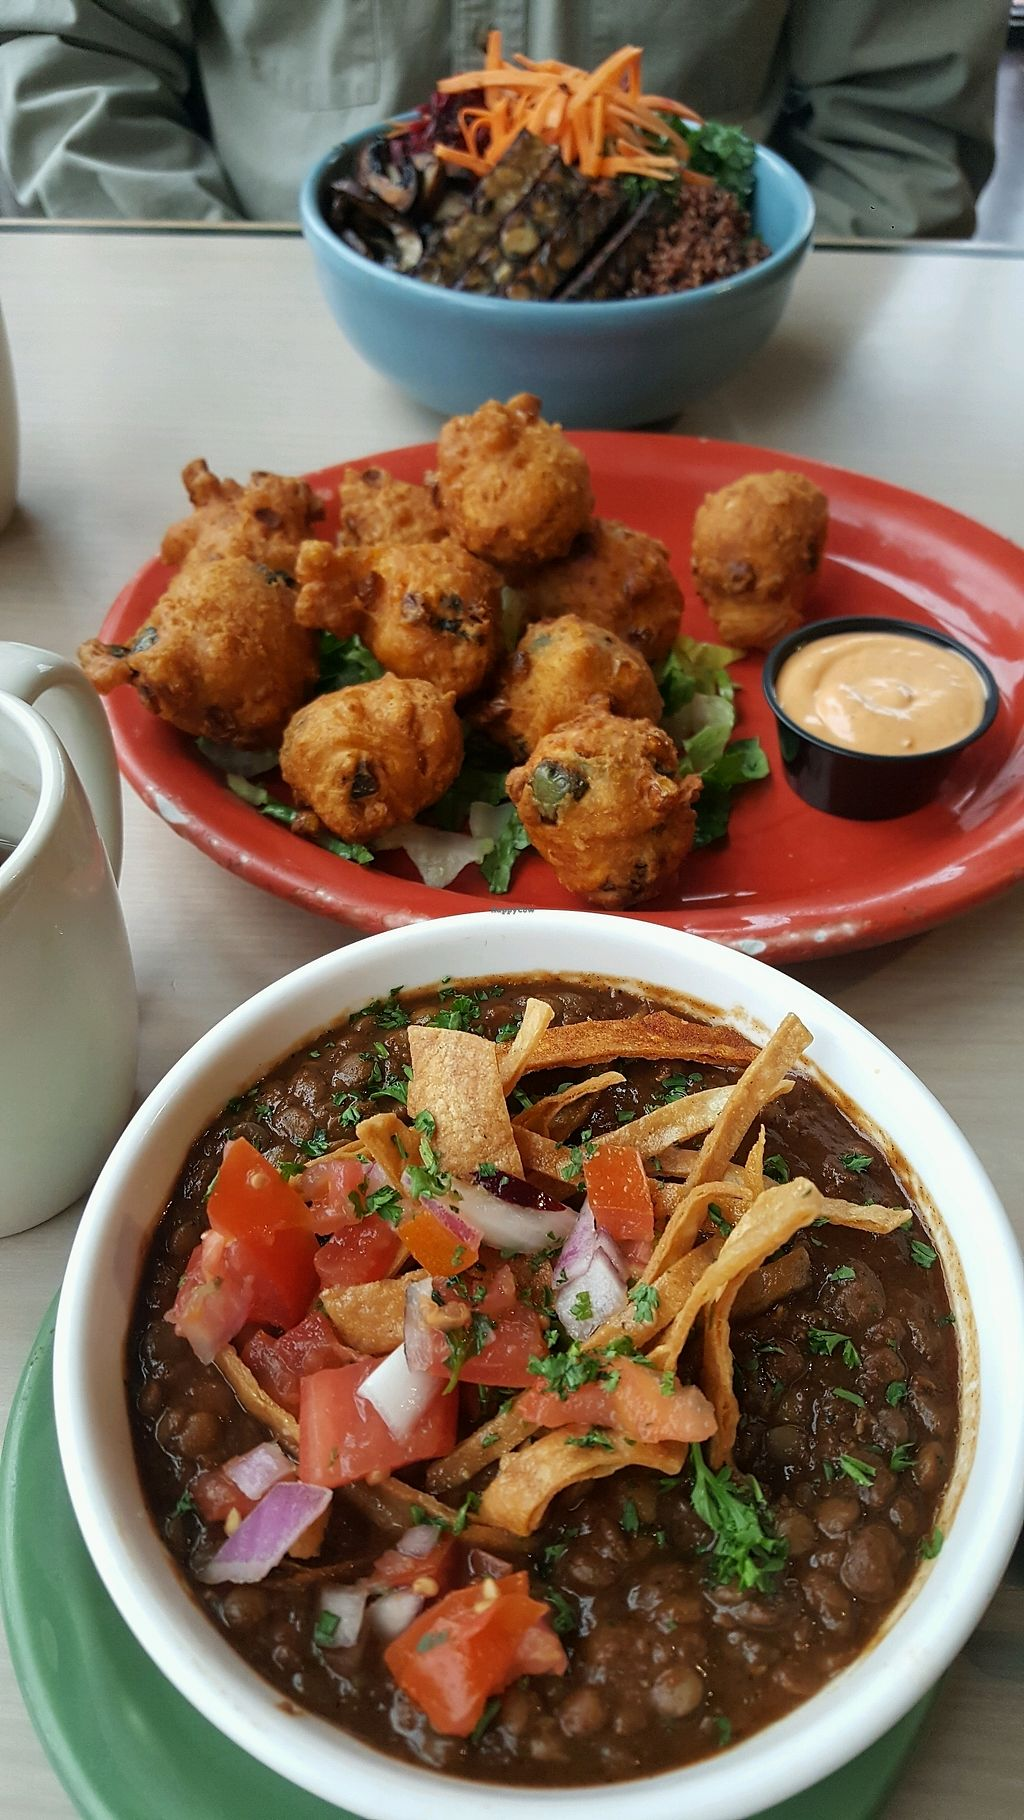 """Photo of Senor Veggie  by <a href=""""/members/profile/DonnaMiller"""">DonnaMiller</a> <br/>Texas lentil chili & poblano corn fritters <br/> December 16, 2017  - <a href='/contact/abuse/image/37190/336217'>Report</a>"""